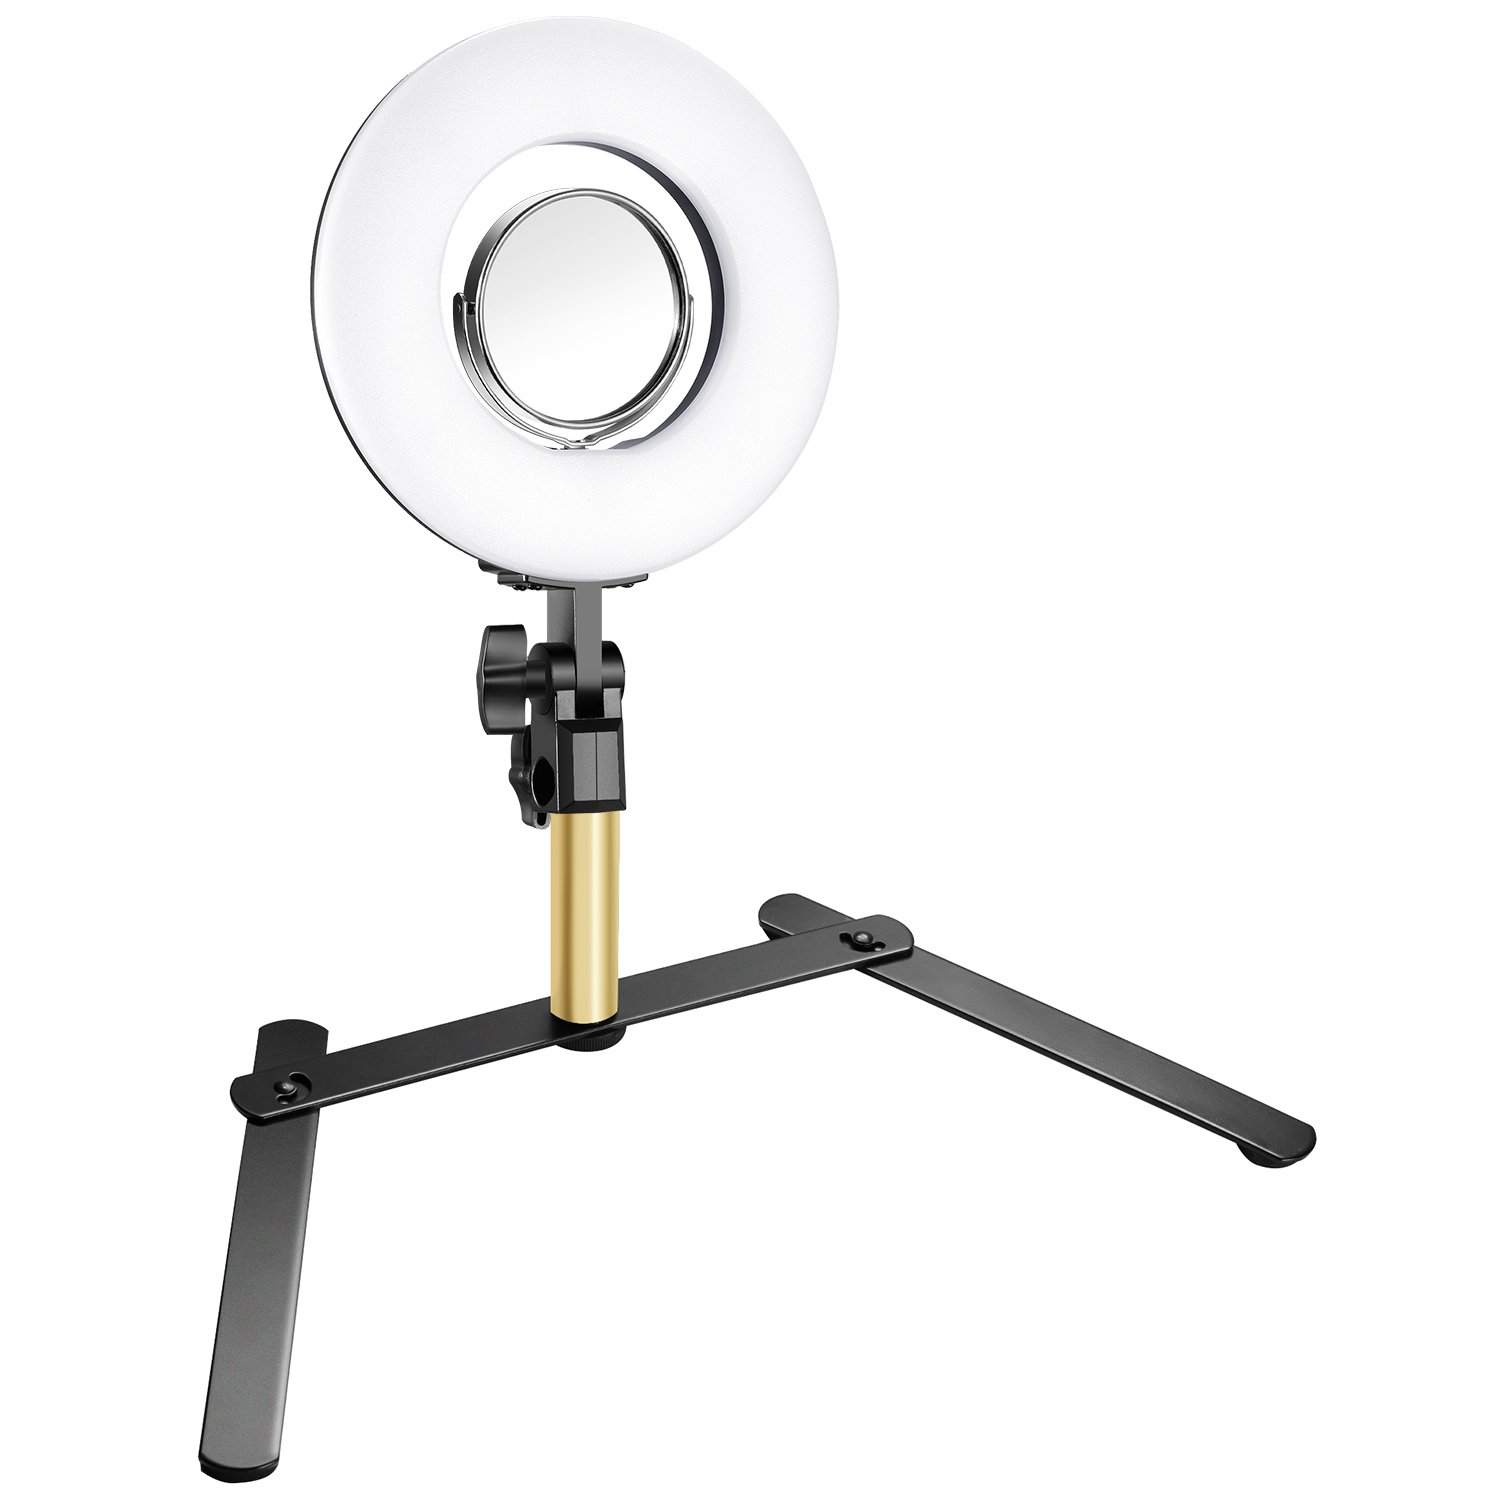 58d06416e53 Neewer Table Top Mini LED Ring Light Lighting Kit Includes 7.7-inch Outer  24W 5500K Ring Light, 3.5-inch Mirror, Desktop Support Stand for Beauty  Blog Make ...